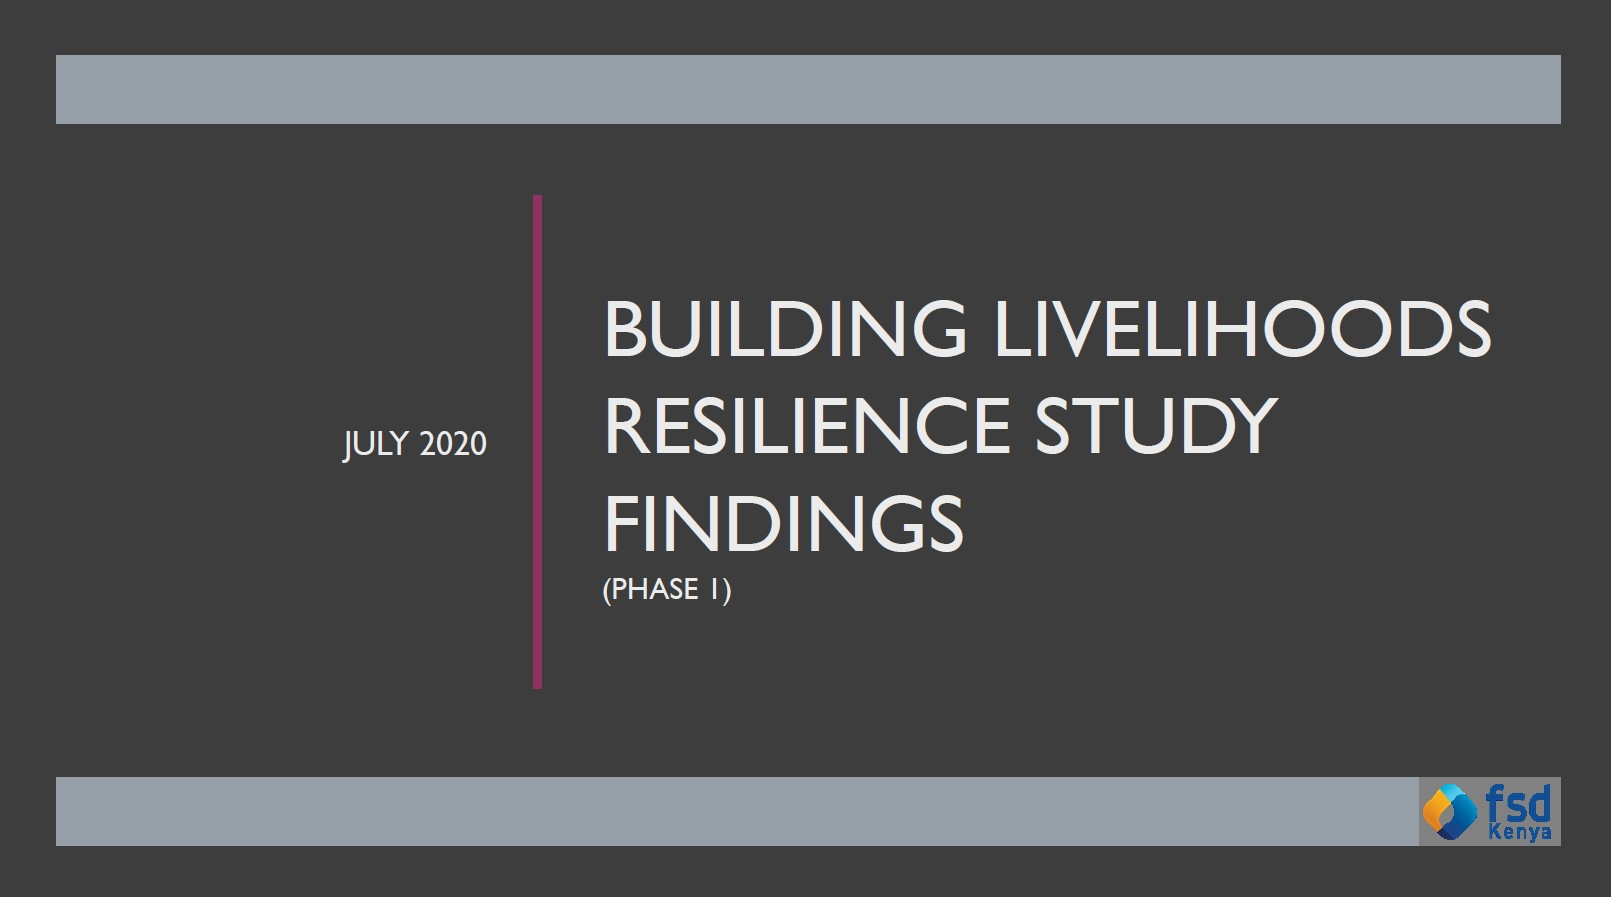 Building livelihoods resilience study findings: Phase 1 (July 2020)